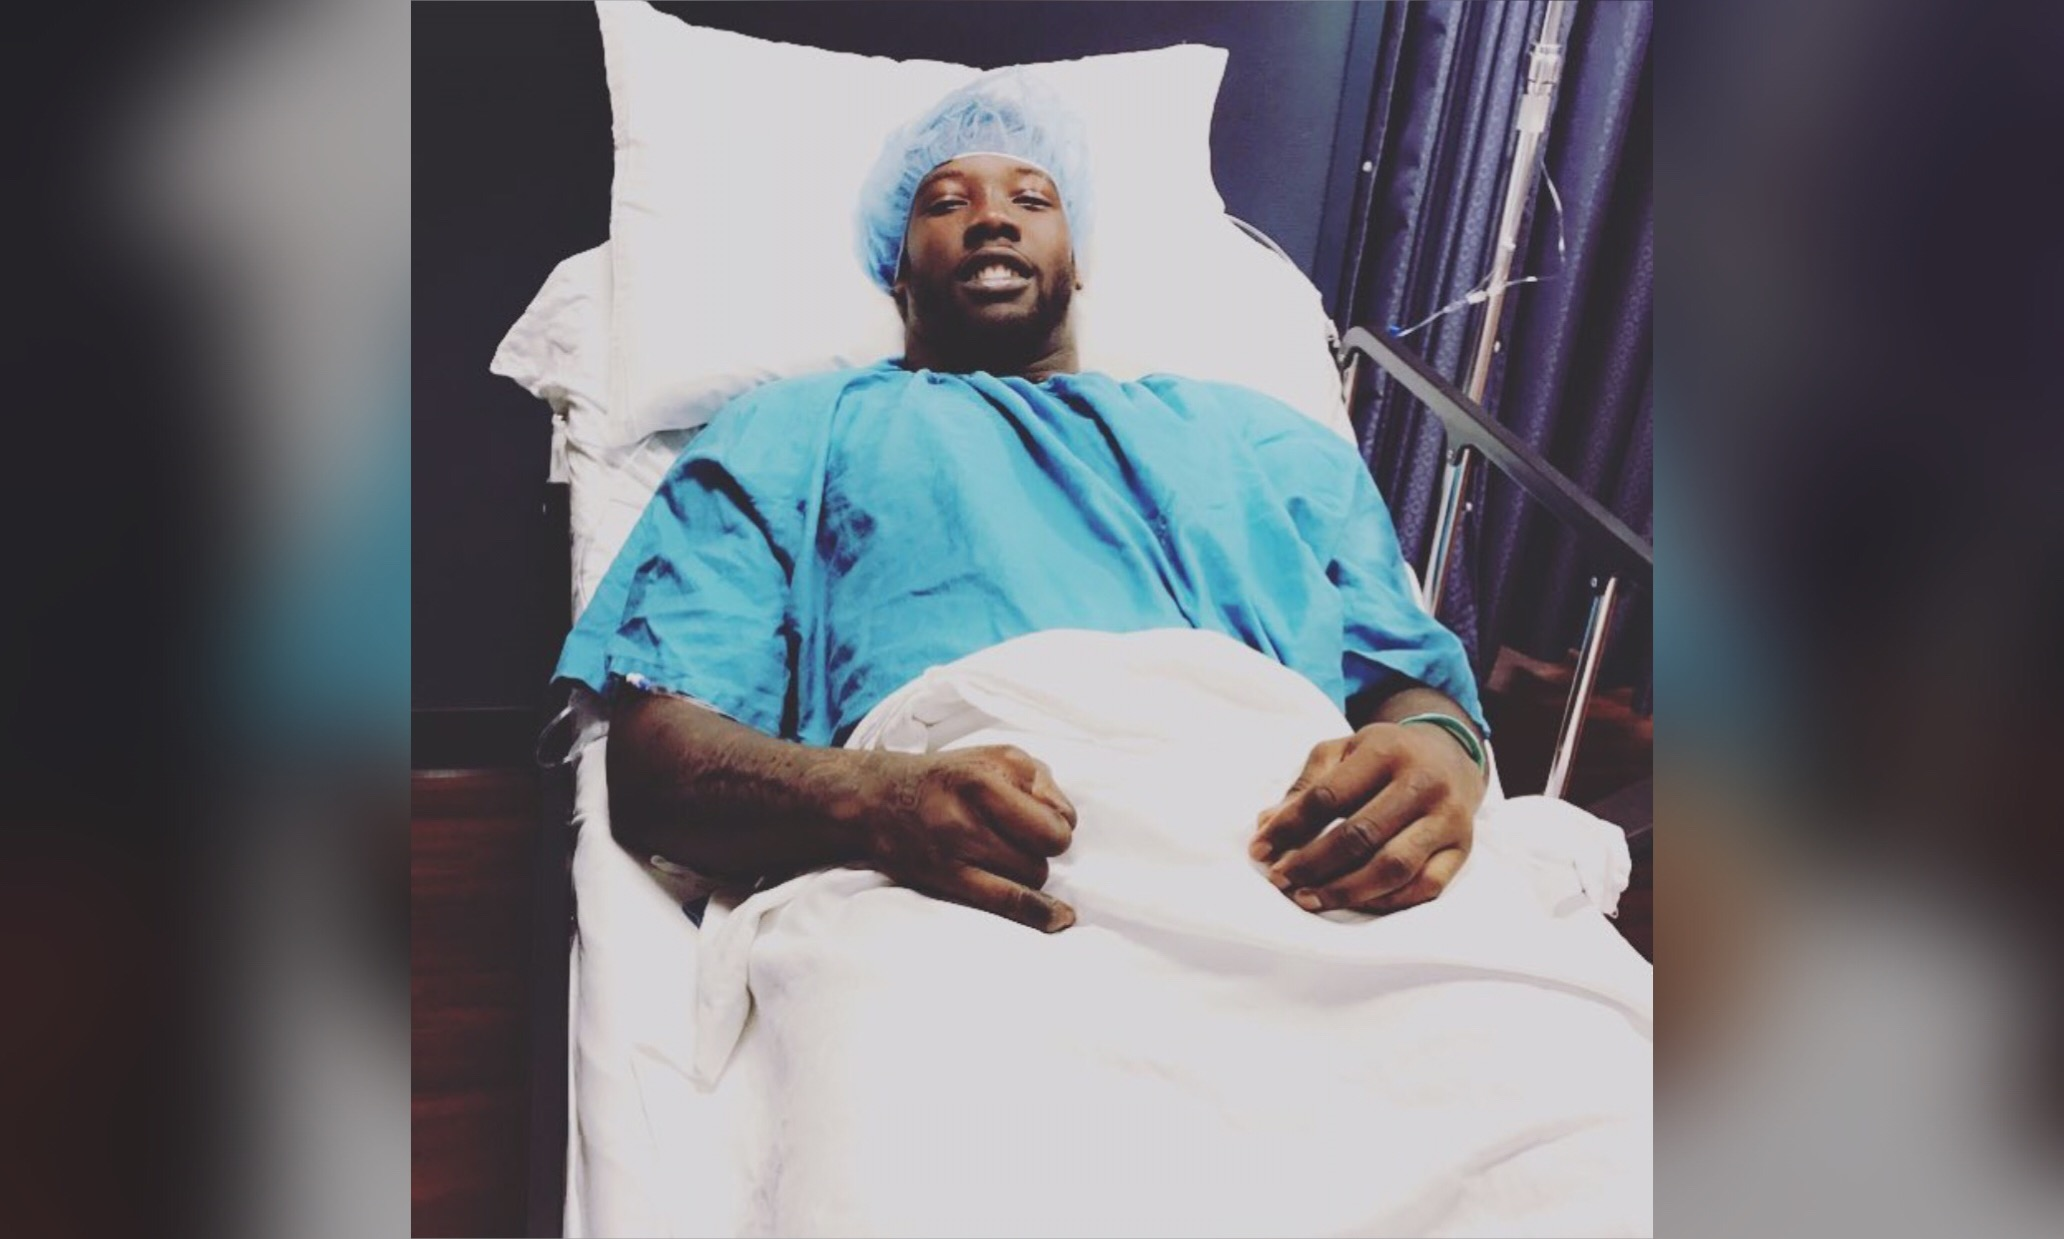 Jason Pierre-Paul goes under the knife